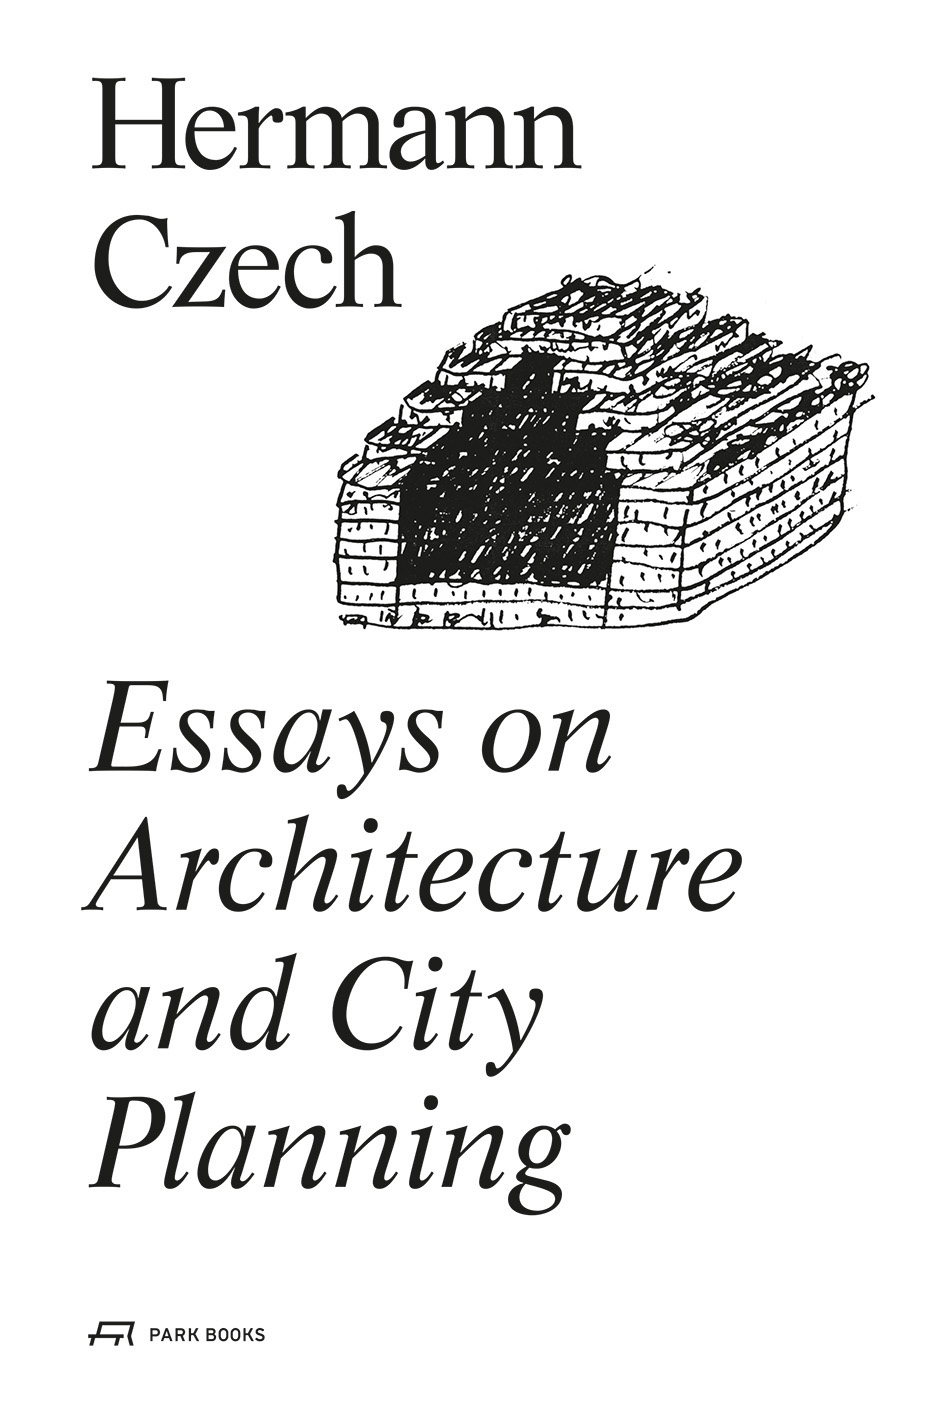 Position Paper Essay Essays On Architecture And City Planning Hermann Czech How To Start A Synthesis Essay also The Importance Of English Essay Essays On Architecture And City Planning Czech Feiersinger Learning English Essay Example